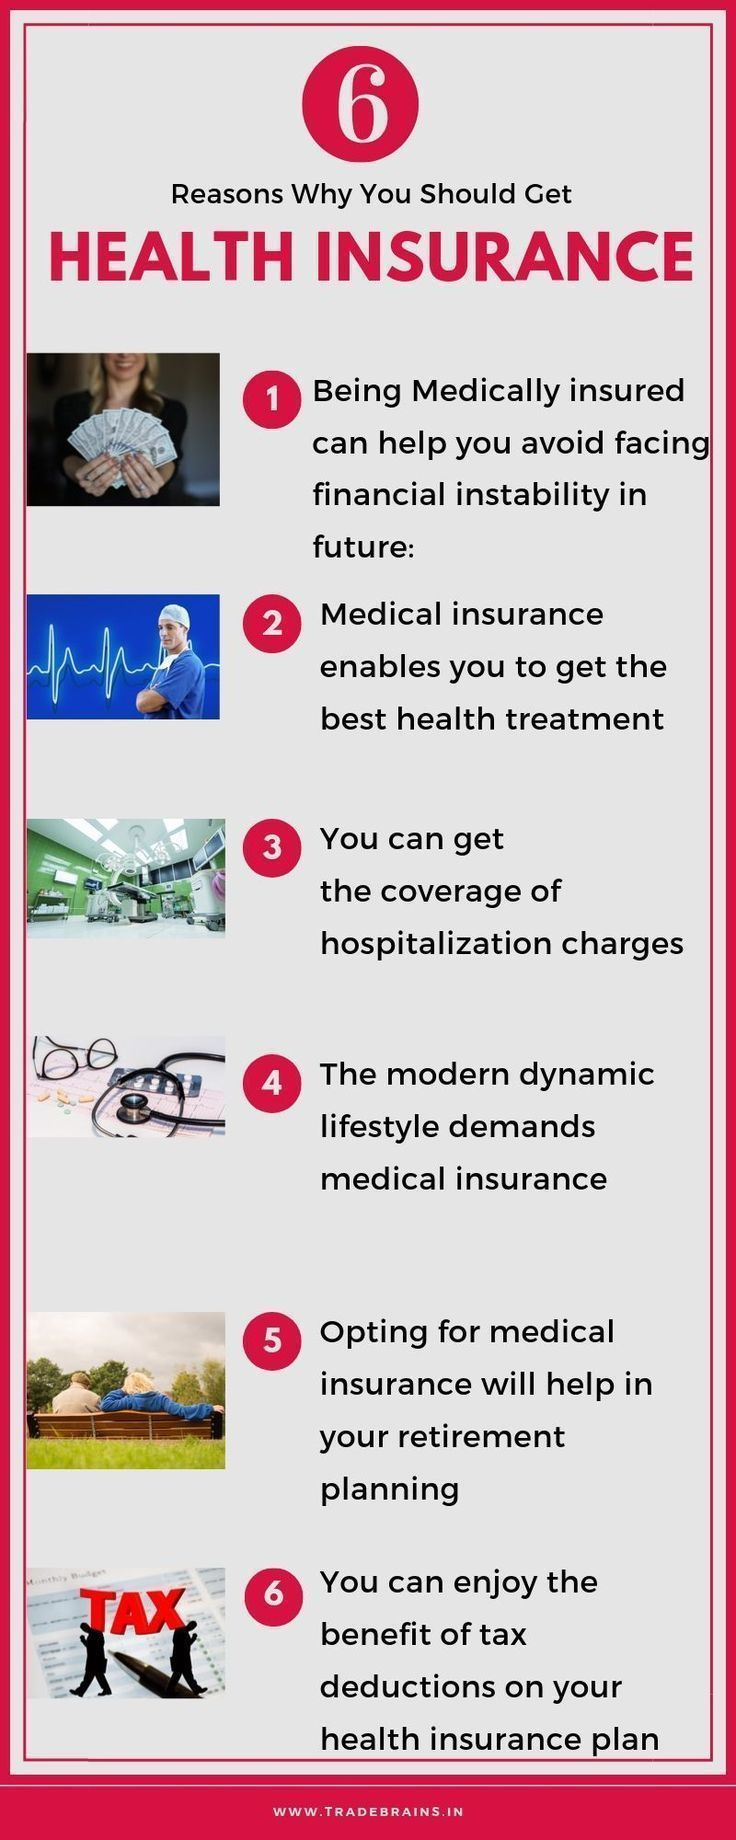 6 Reasons Why You Should Get Health Insurance Health Insurance Quote Buy Health Insurance Health Insurance Humor